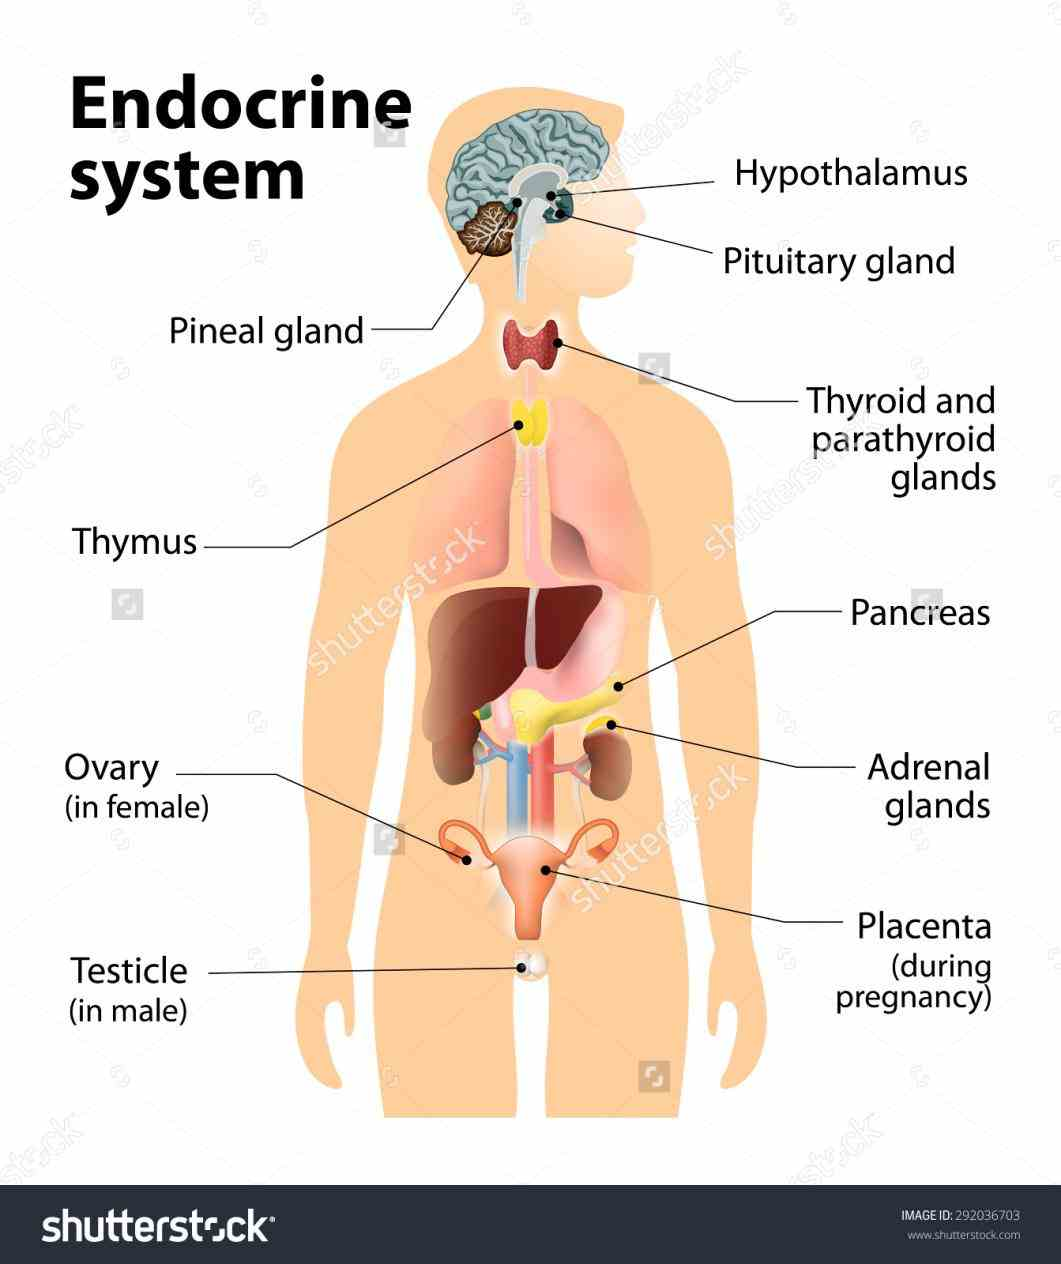 Anatomy Of The Endocrine System Pictures Wallpapers